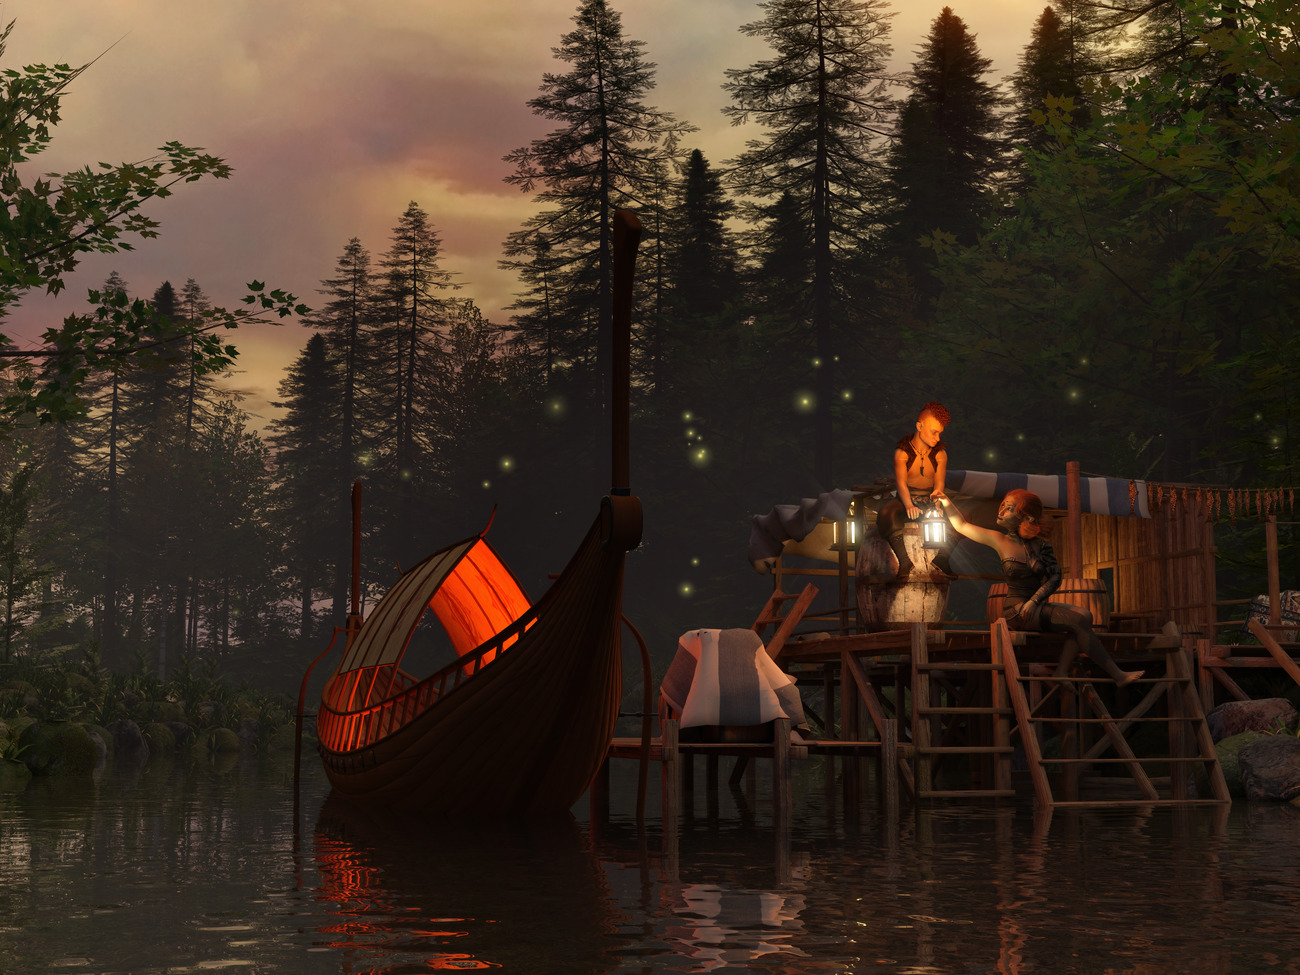 Elven romance on the River by wraae